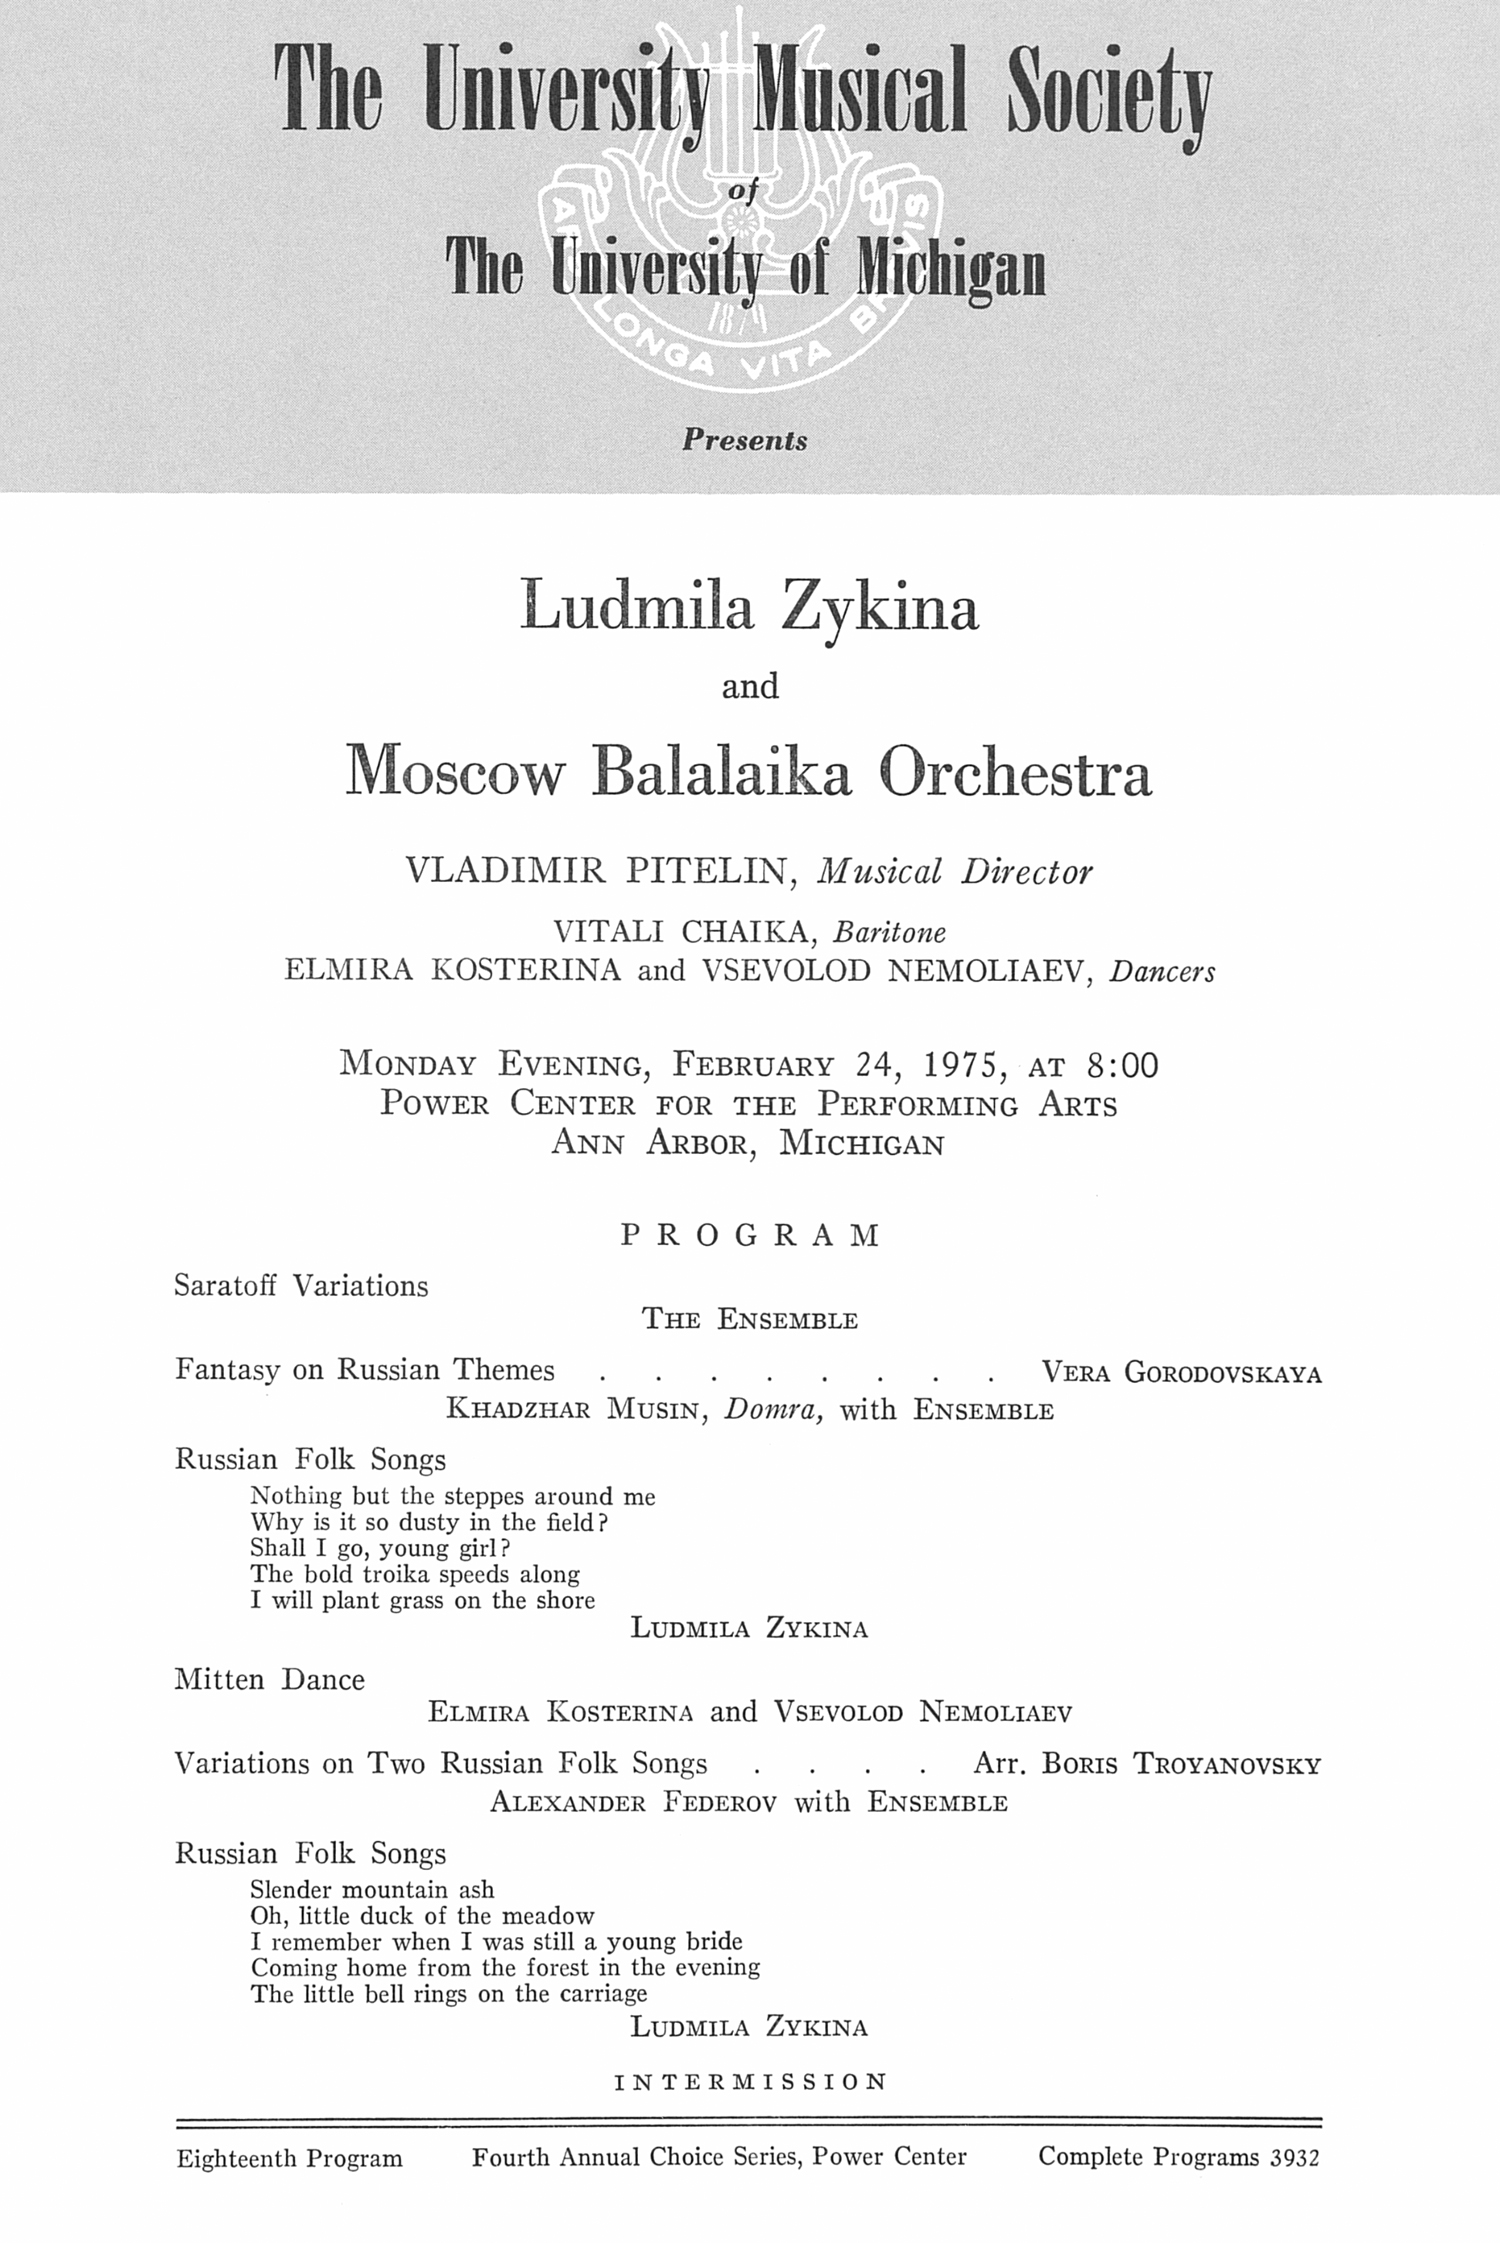 UMS Concert Program, February 24, 1975: Ludmila Zykina And Moscow Balalaika Orchestra --  image